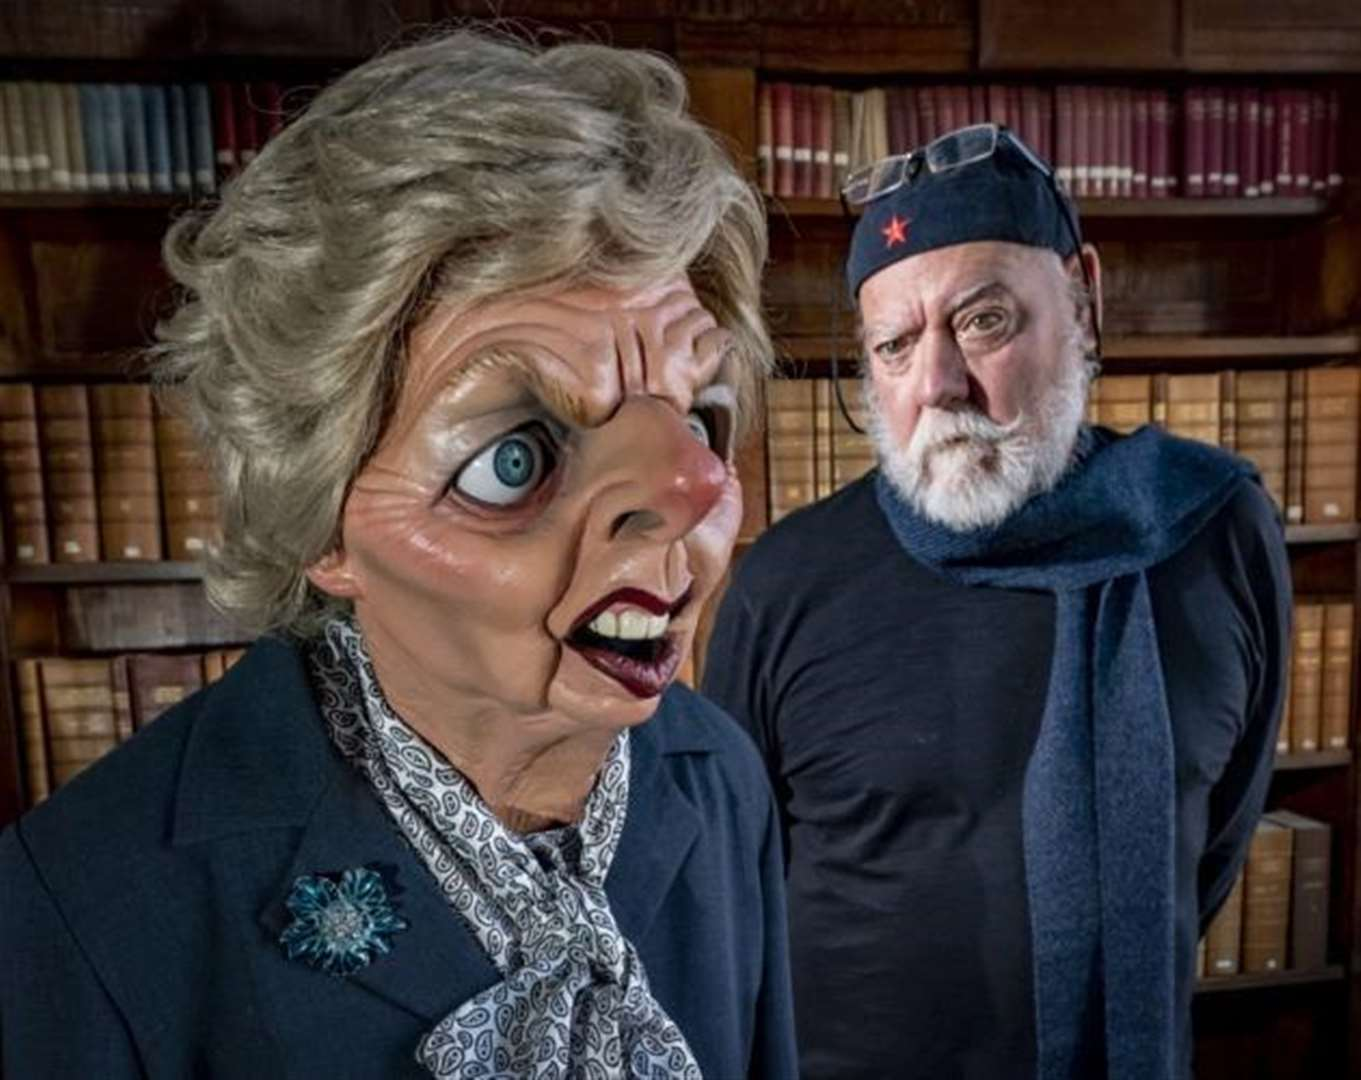 Spitting Image archive comes 'home' to Cambridge